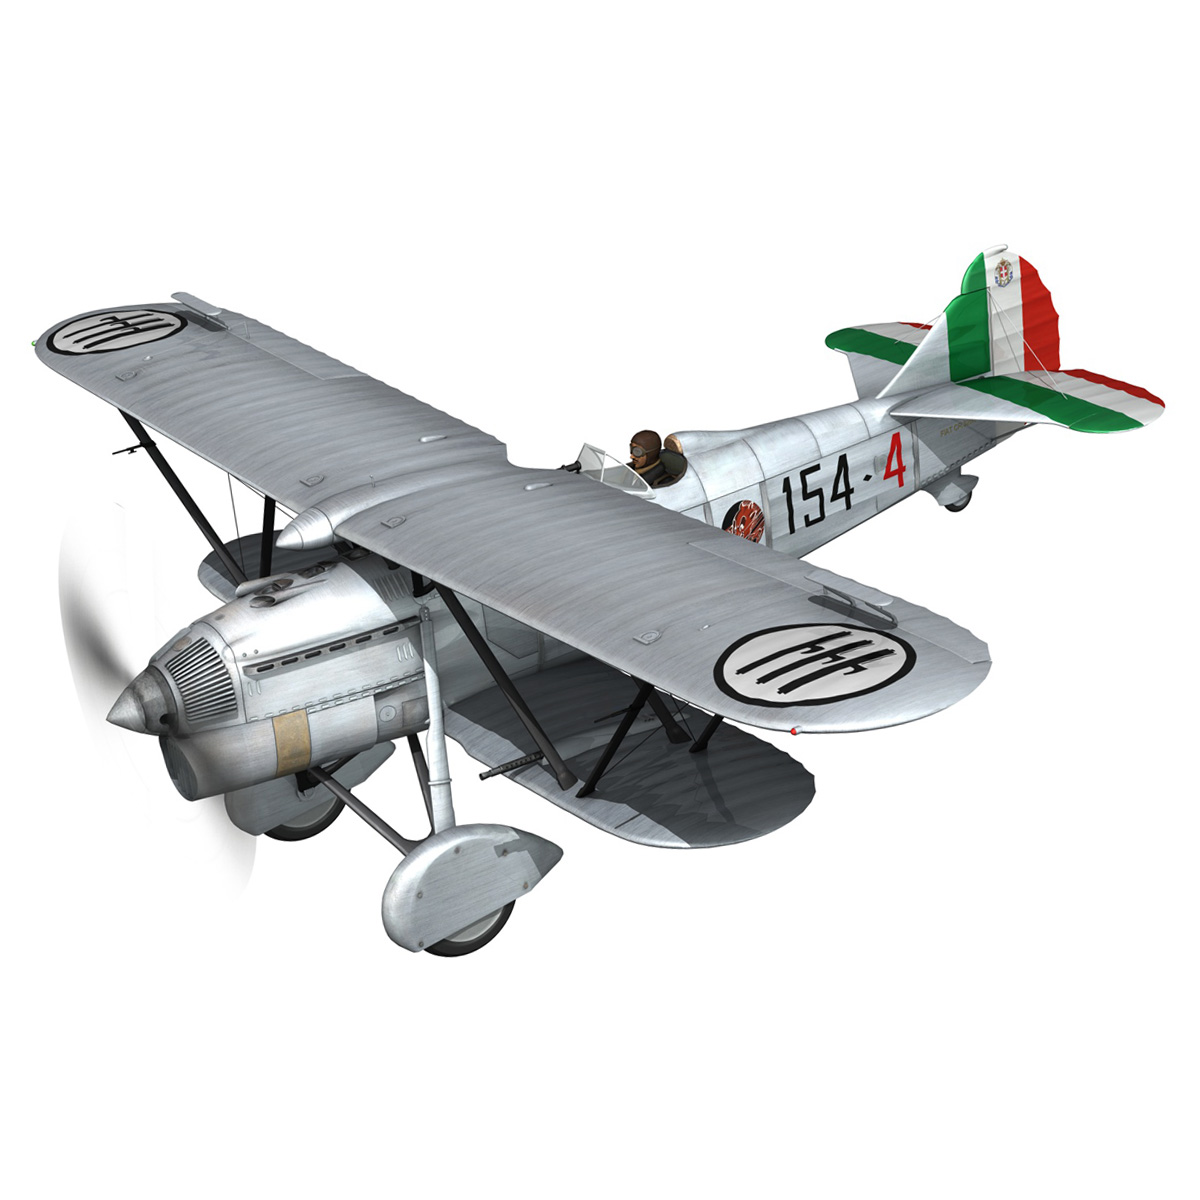 fiat cr.32 – italy airforce – 154 squadriglia 3d model fbx c4d lwo obj 268129